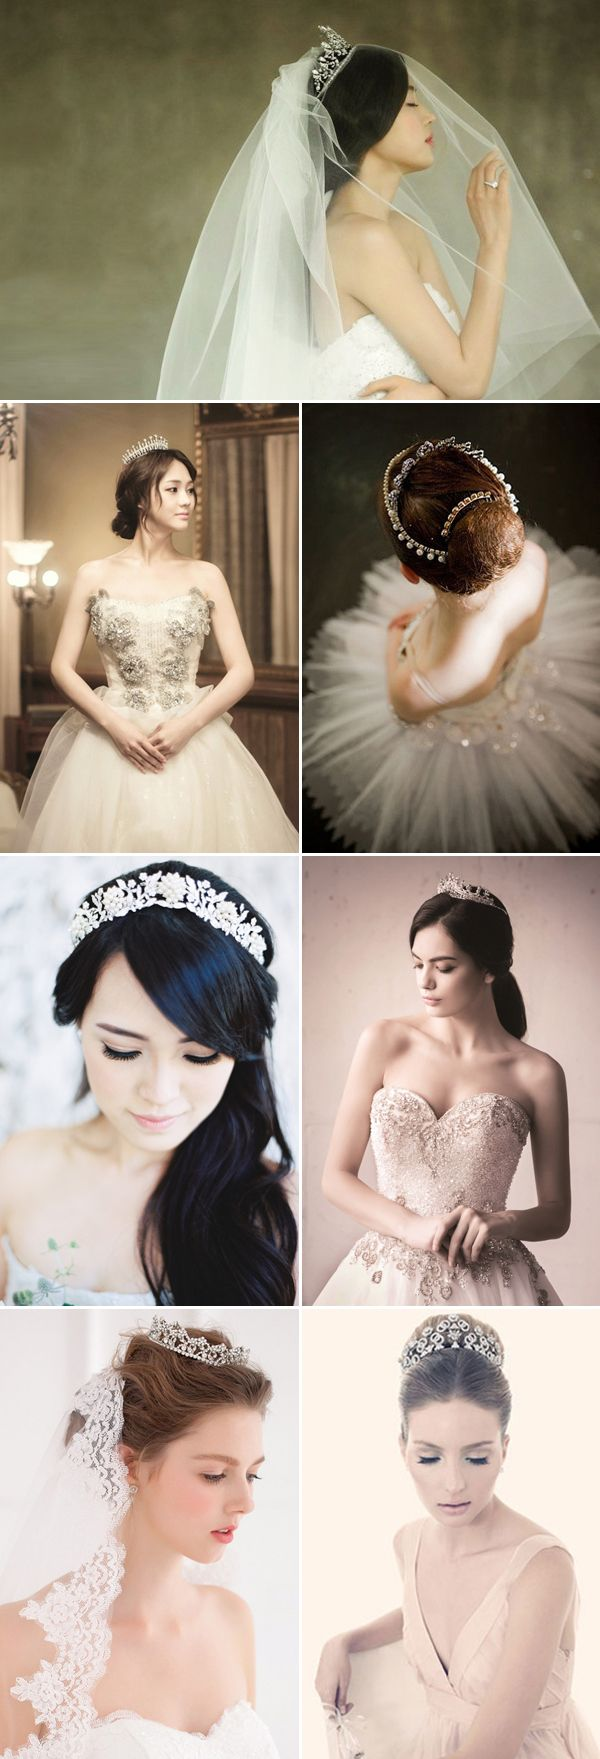 If looking like royalty is something you want for your big day, tiara is definitely a classic choice you can consider. Your wedding is the one day of your life where you can fulfill your childhood princess dream without being judged by anyone, so why not top it off with a shiny tiara to complete …